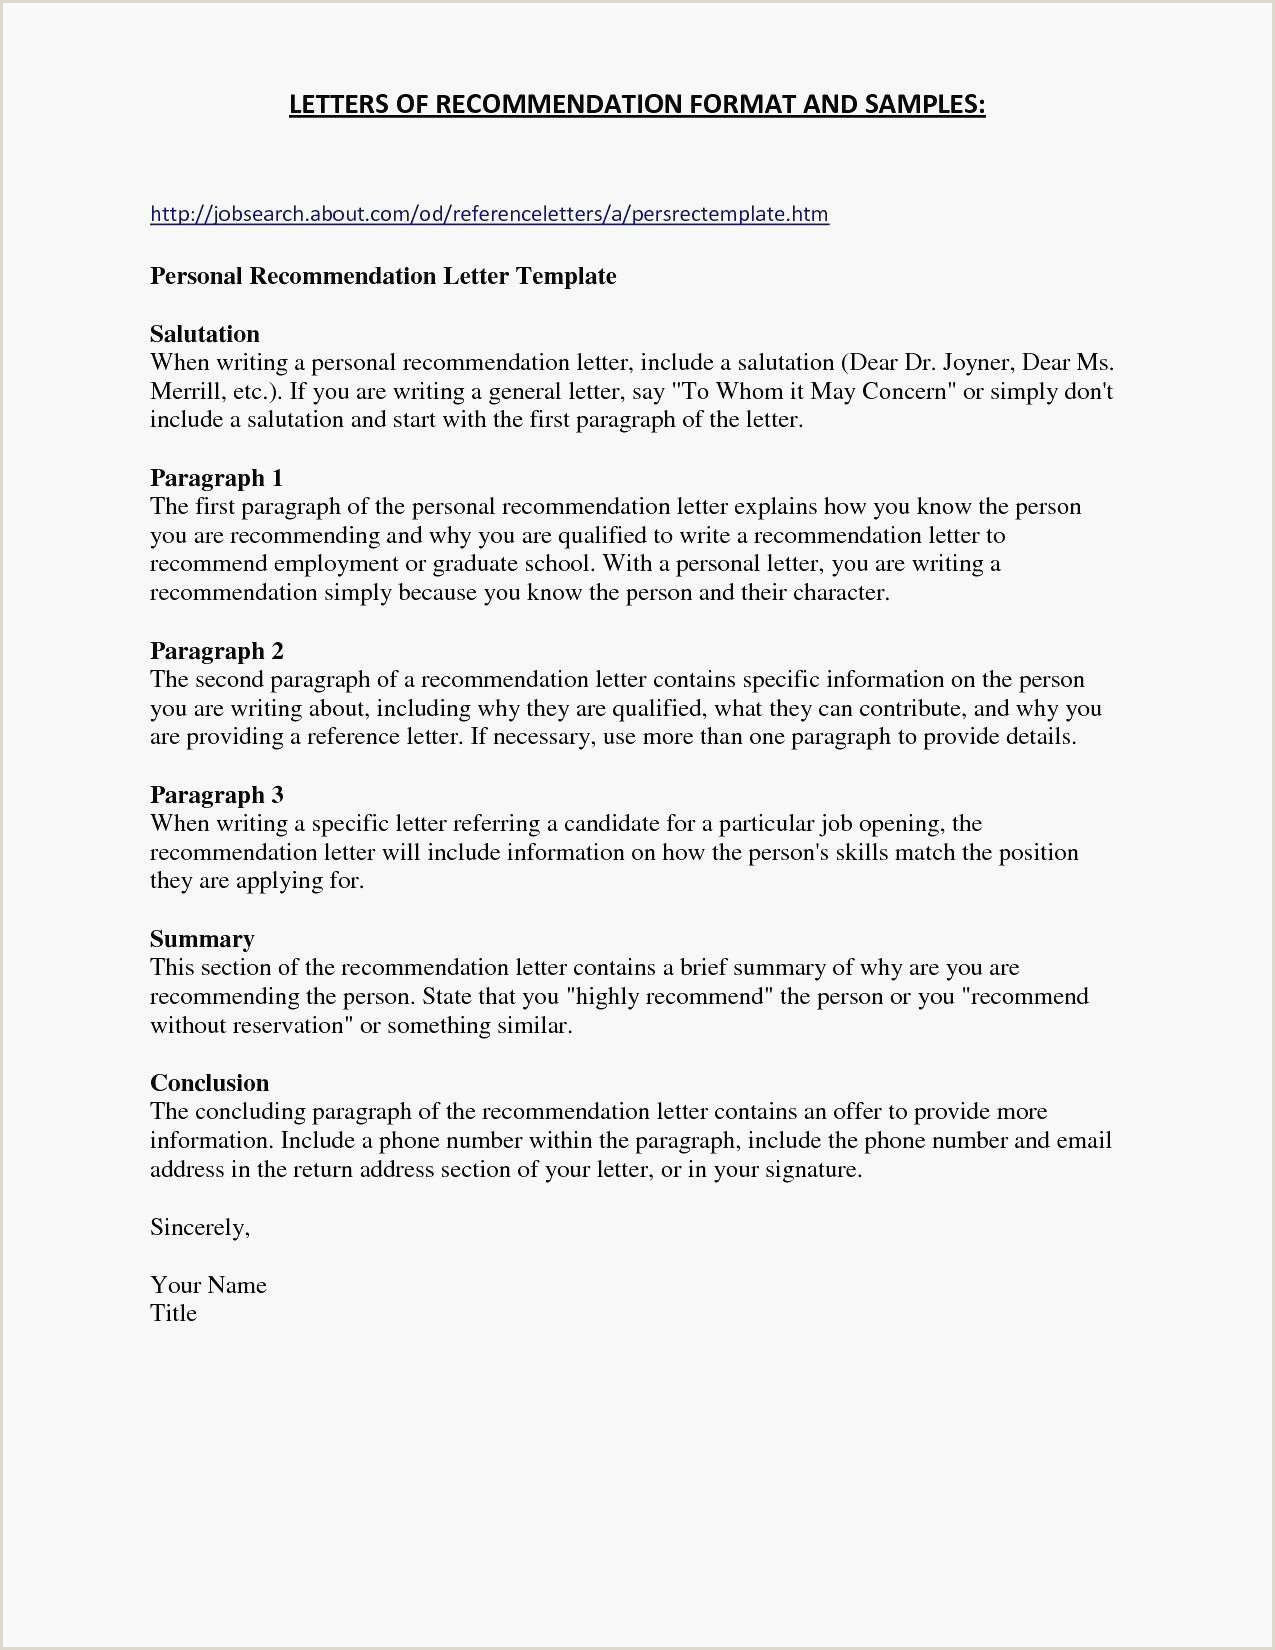 Medical assistant Resume Samples Best Physician Cover